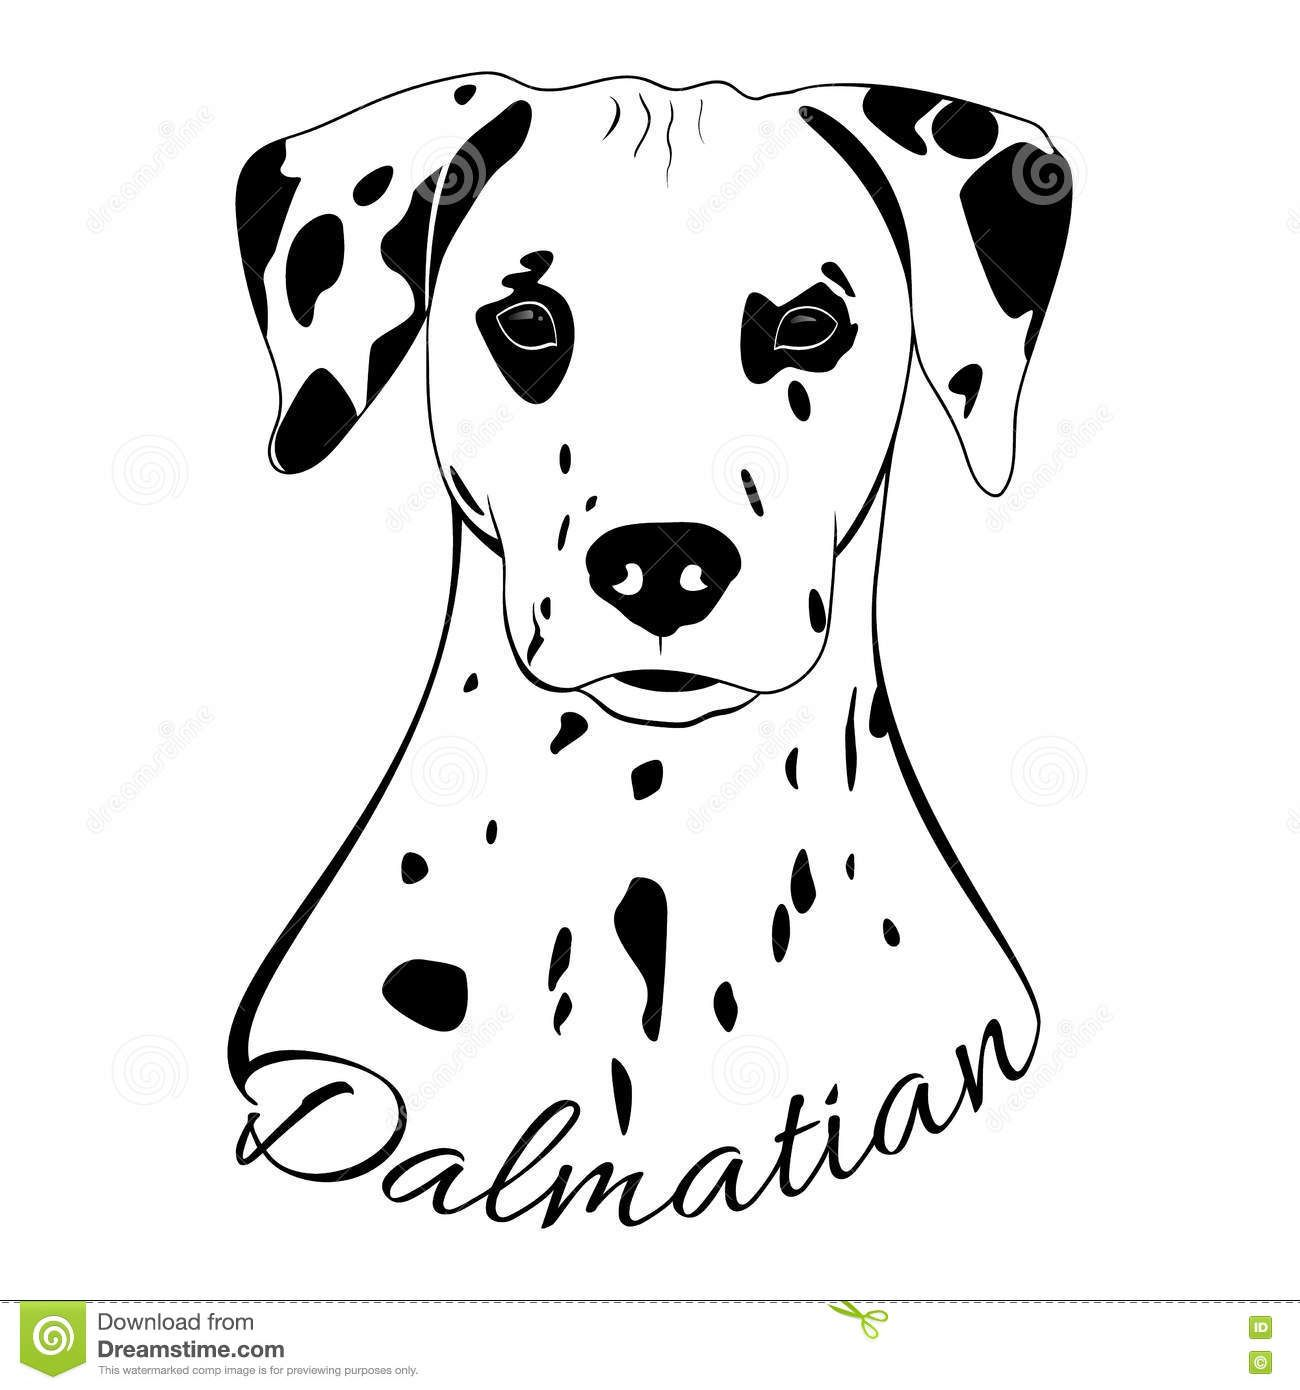 Dalmatian Dog Head Download From Over 64 Million High Quality Stock Photos Images Vectors Sign Up For Fre Dalmatian Dogs Dog Illustration Outline Drawings